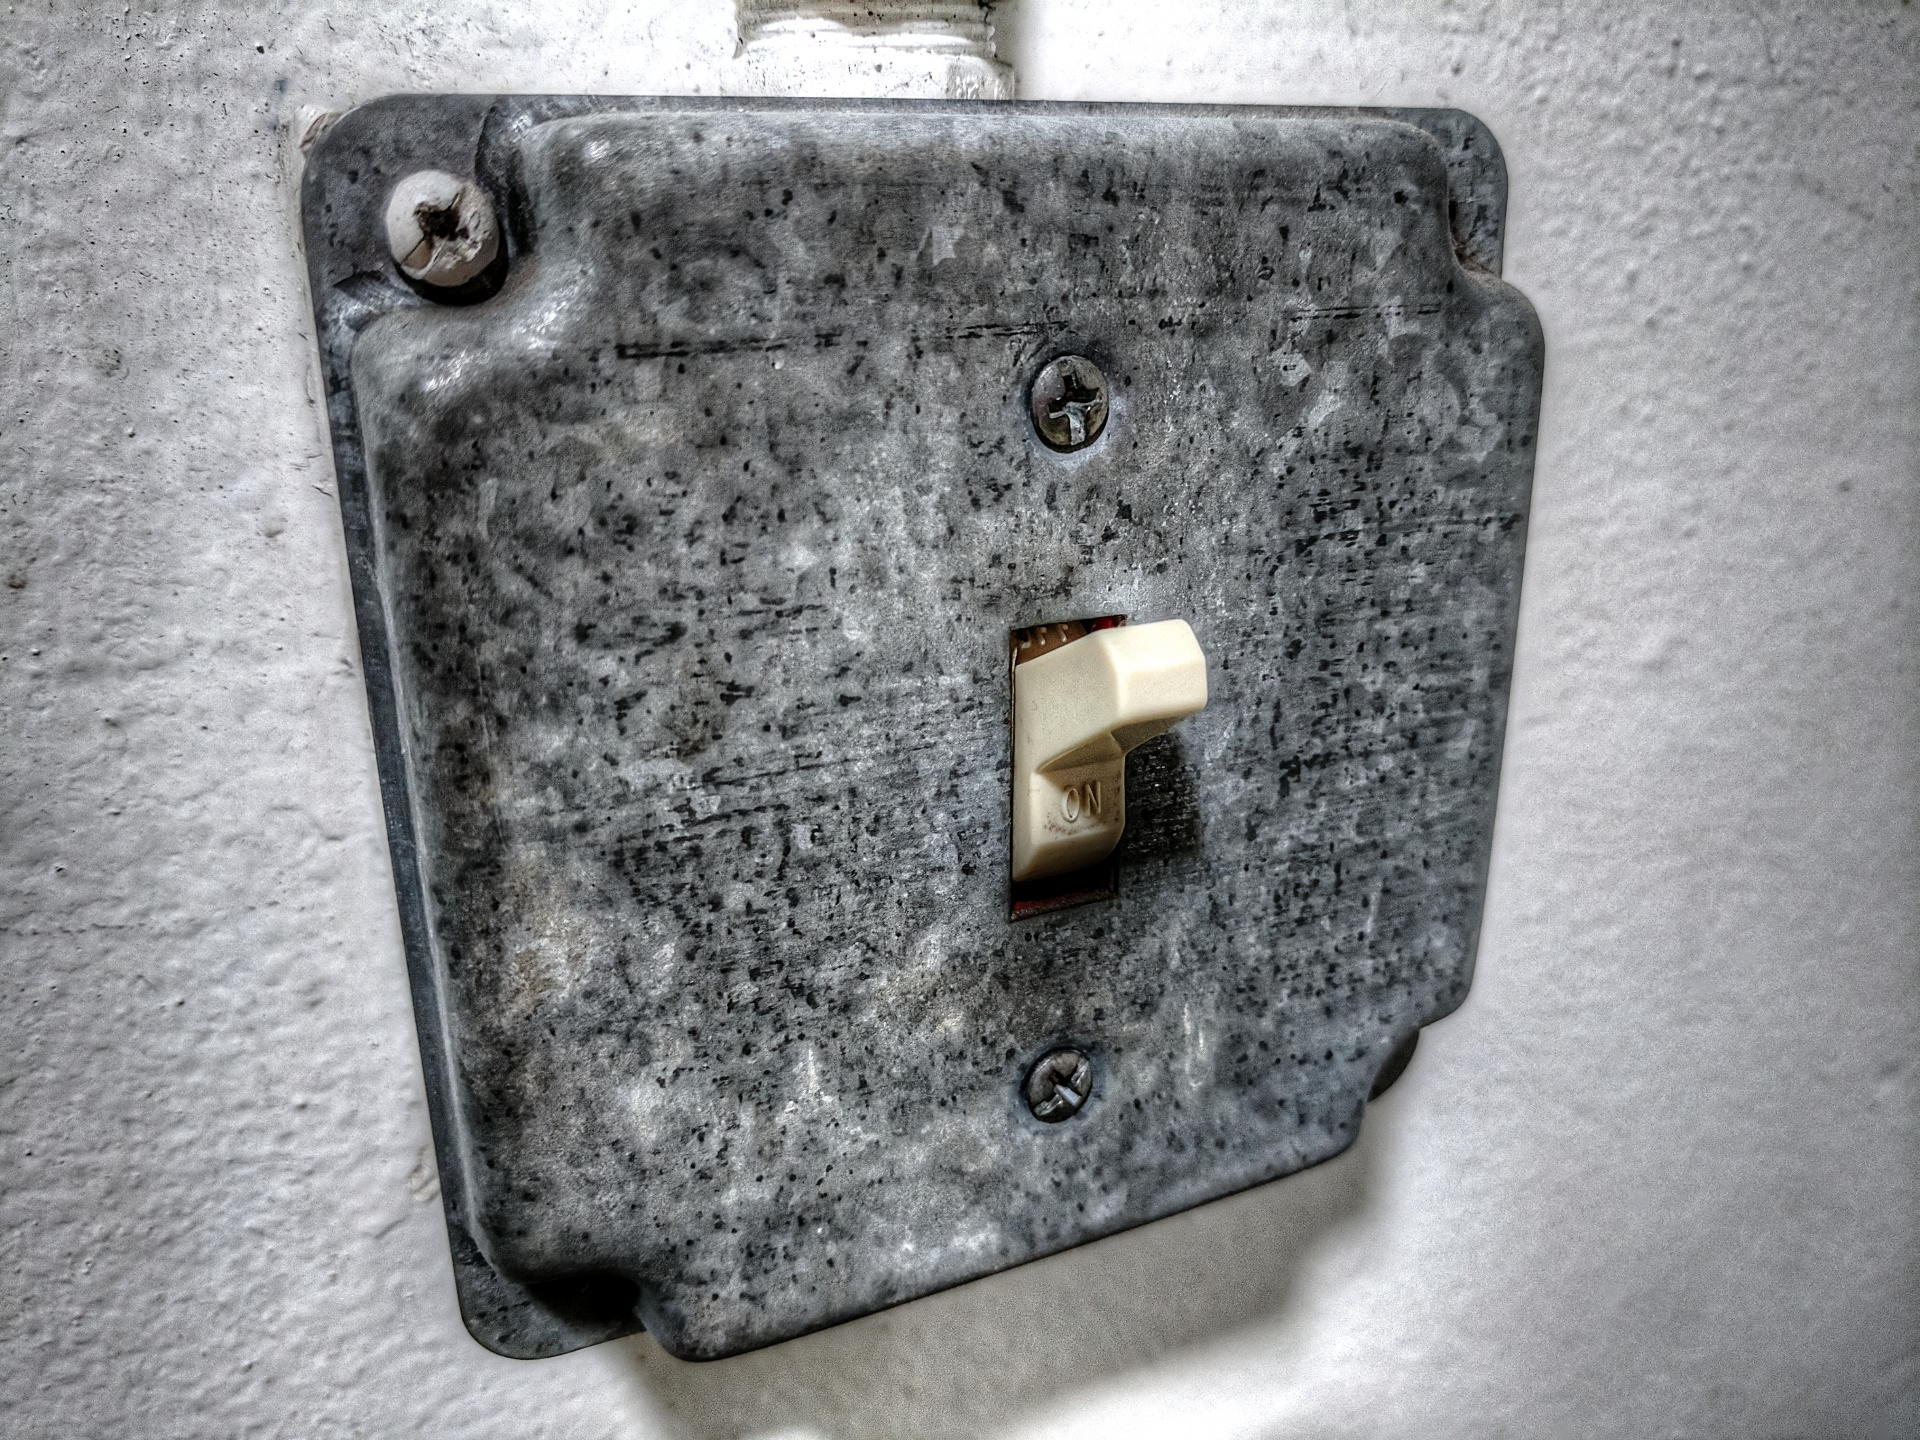 Light,light switch,metal box,metal,grunge - free photo ...